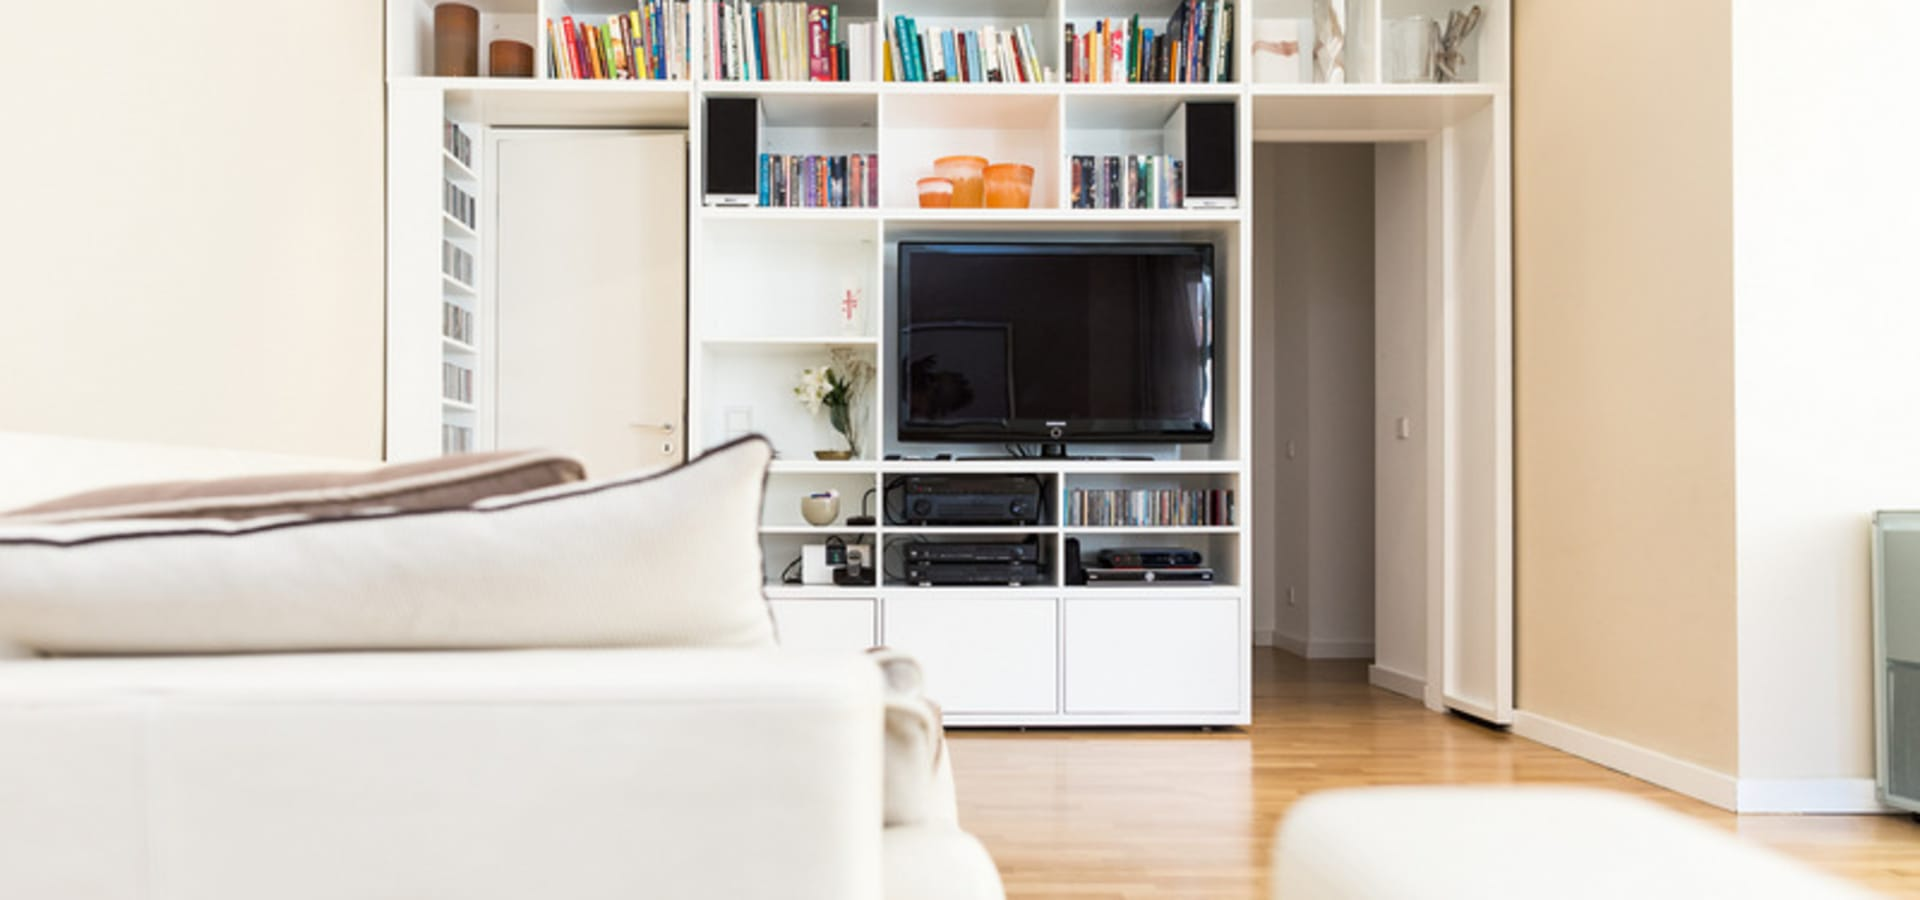 Pickawood Gmbh Möbel Accessoires In Hambourg Homify